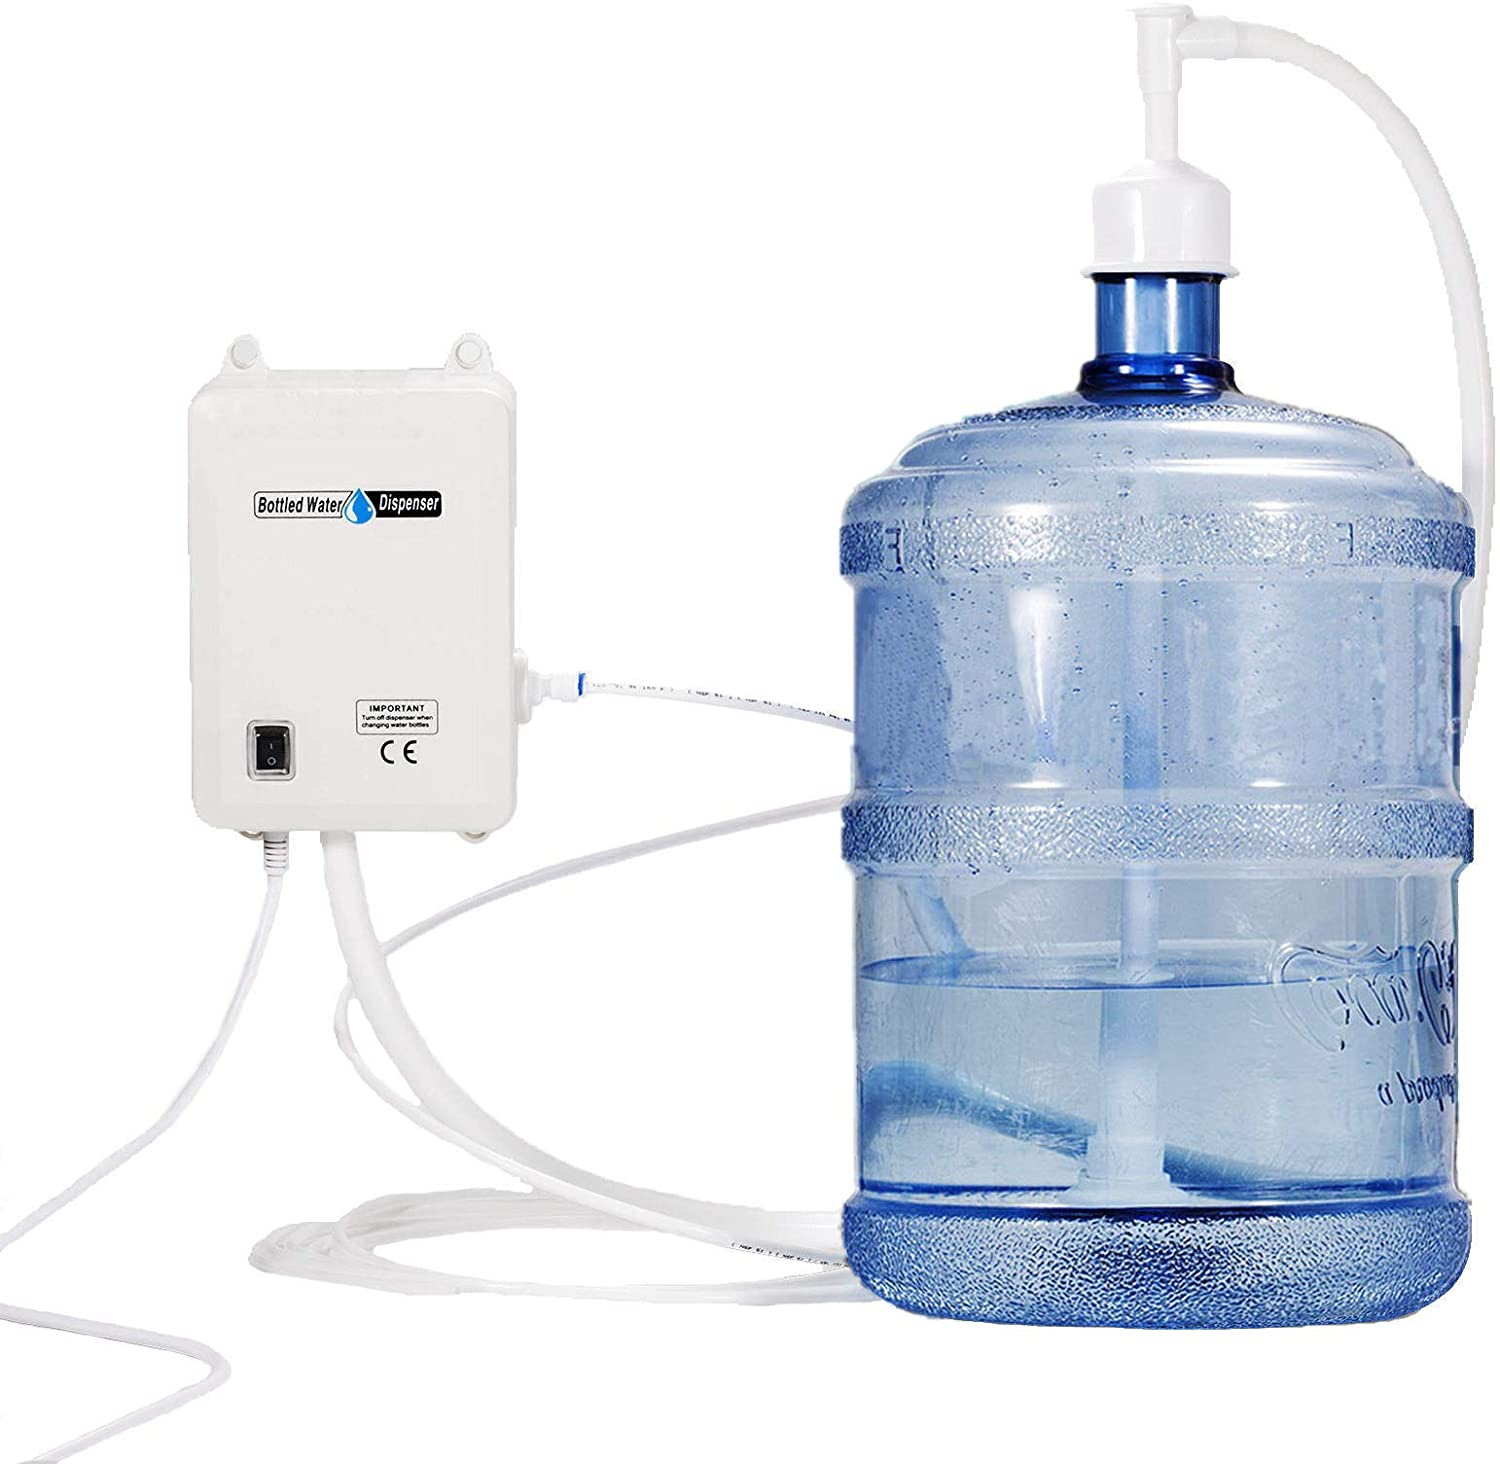 Hotsell999 Flojet BW2000A 220V AC Bottled Water Dispensing Pump System Replaces Bunn